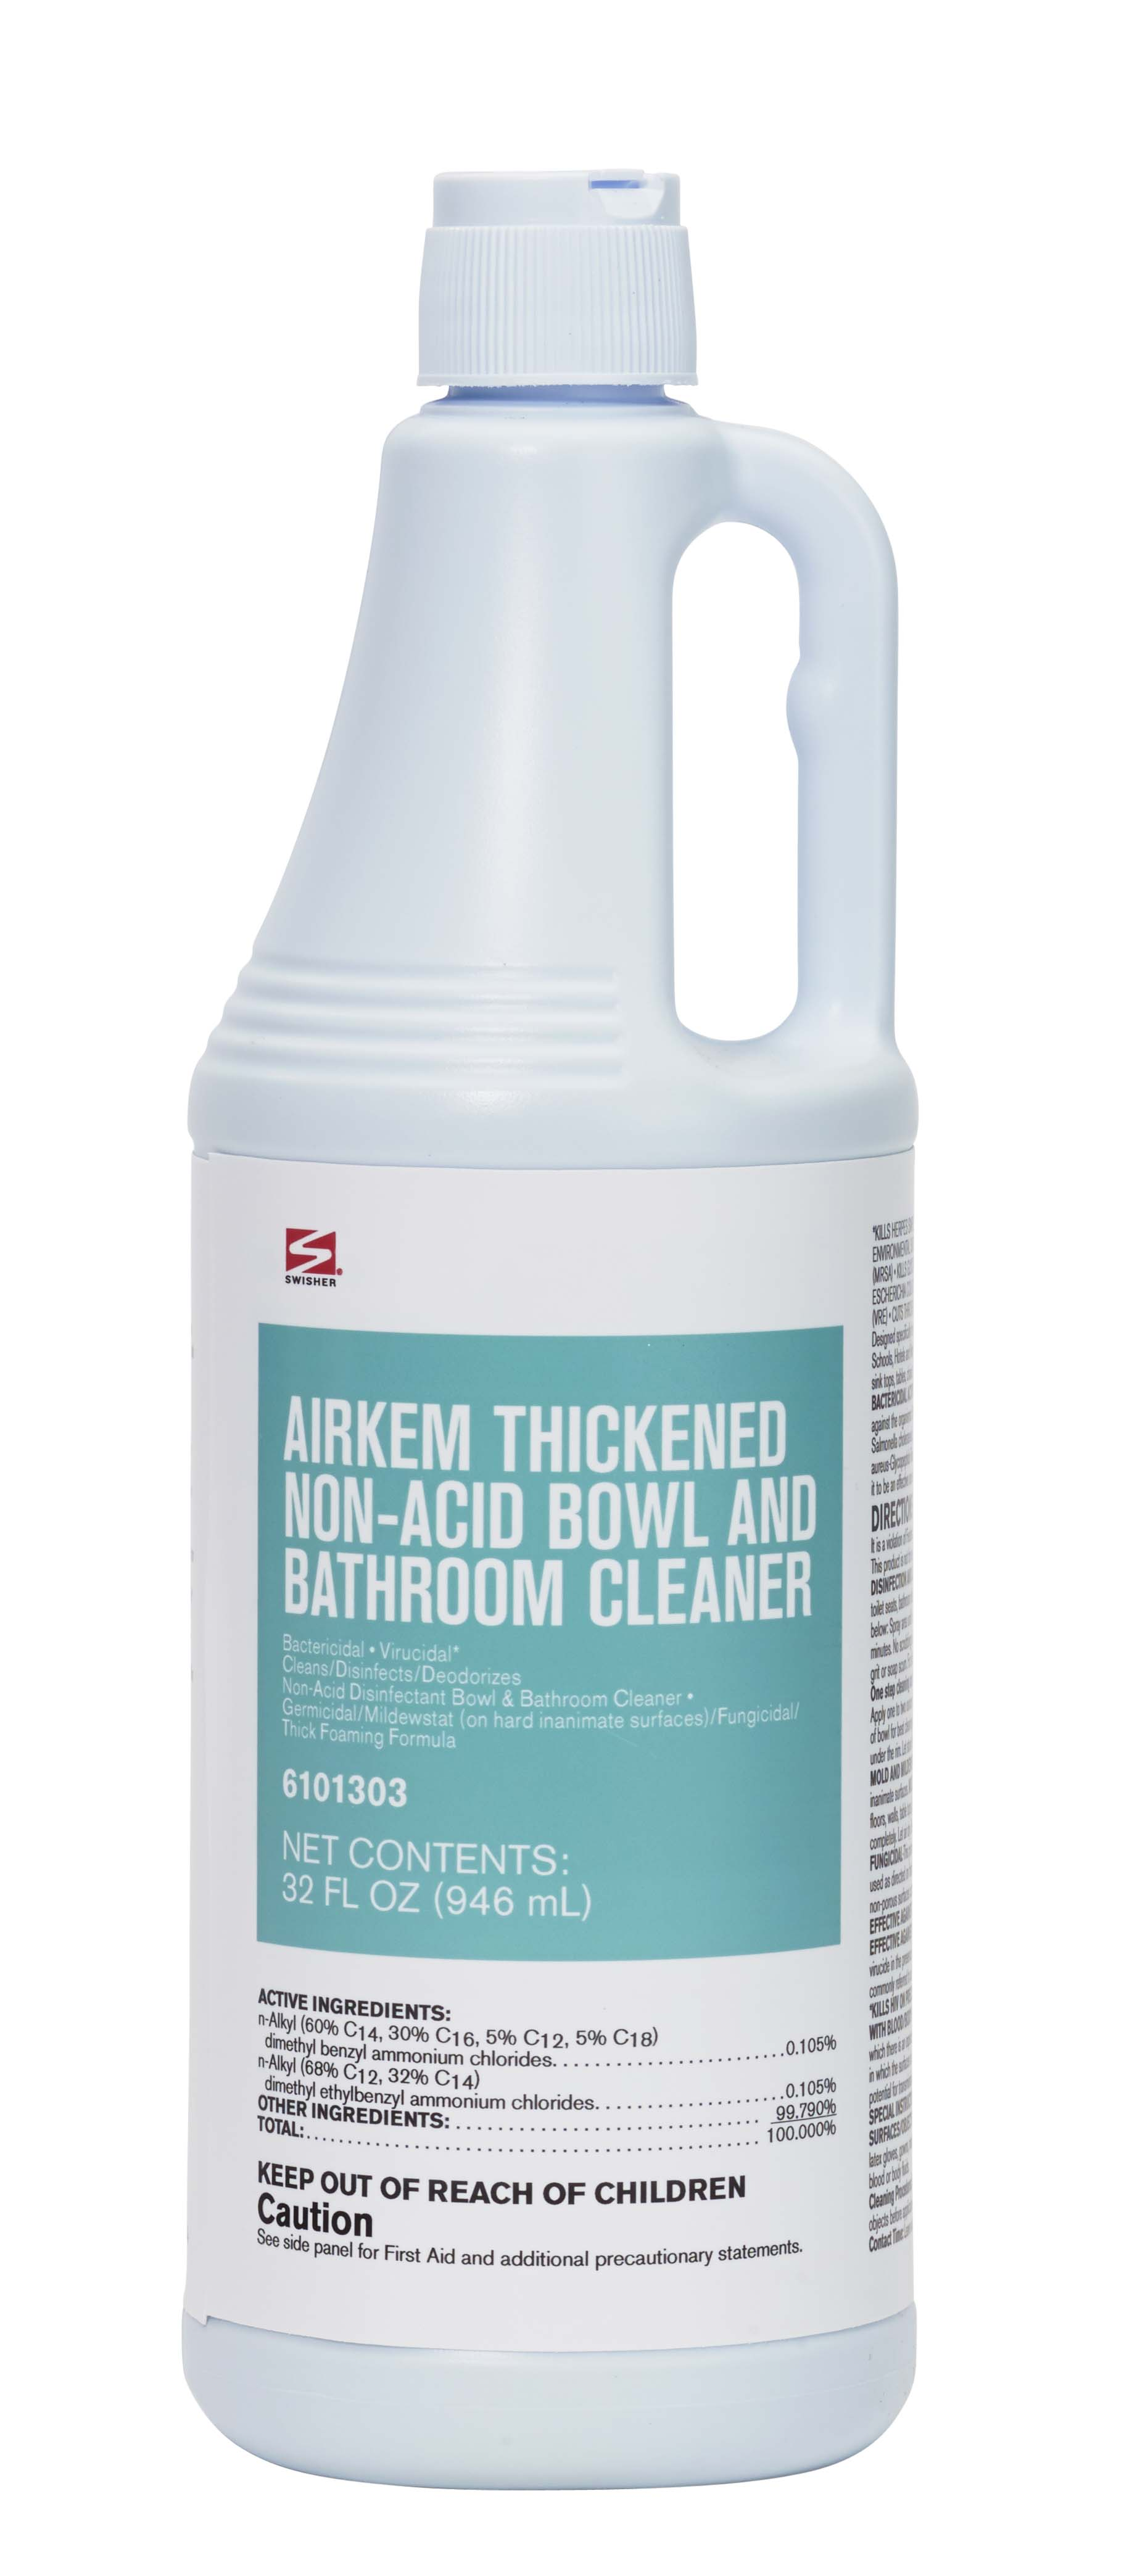 Swisher Airkem Thickened Non Acid Bowl Bathroom Cleaner